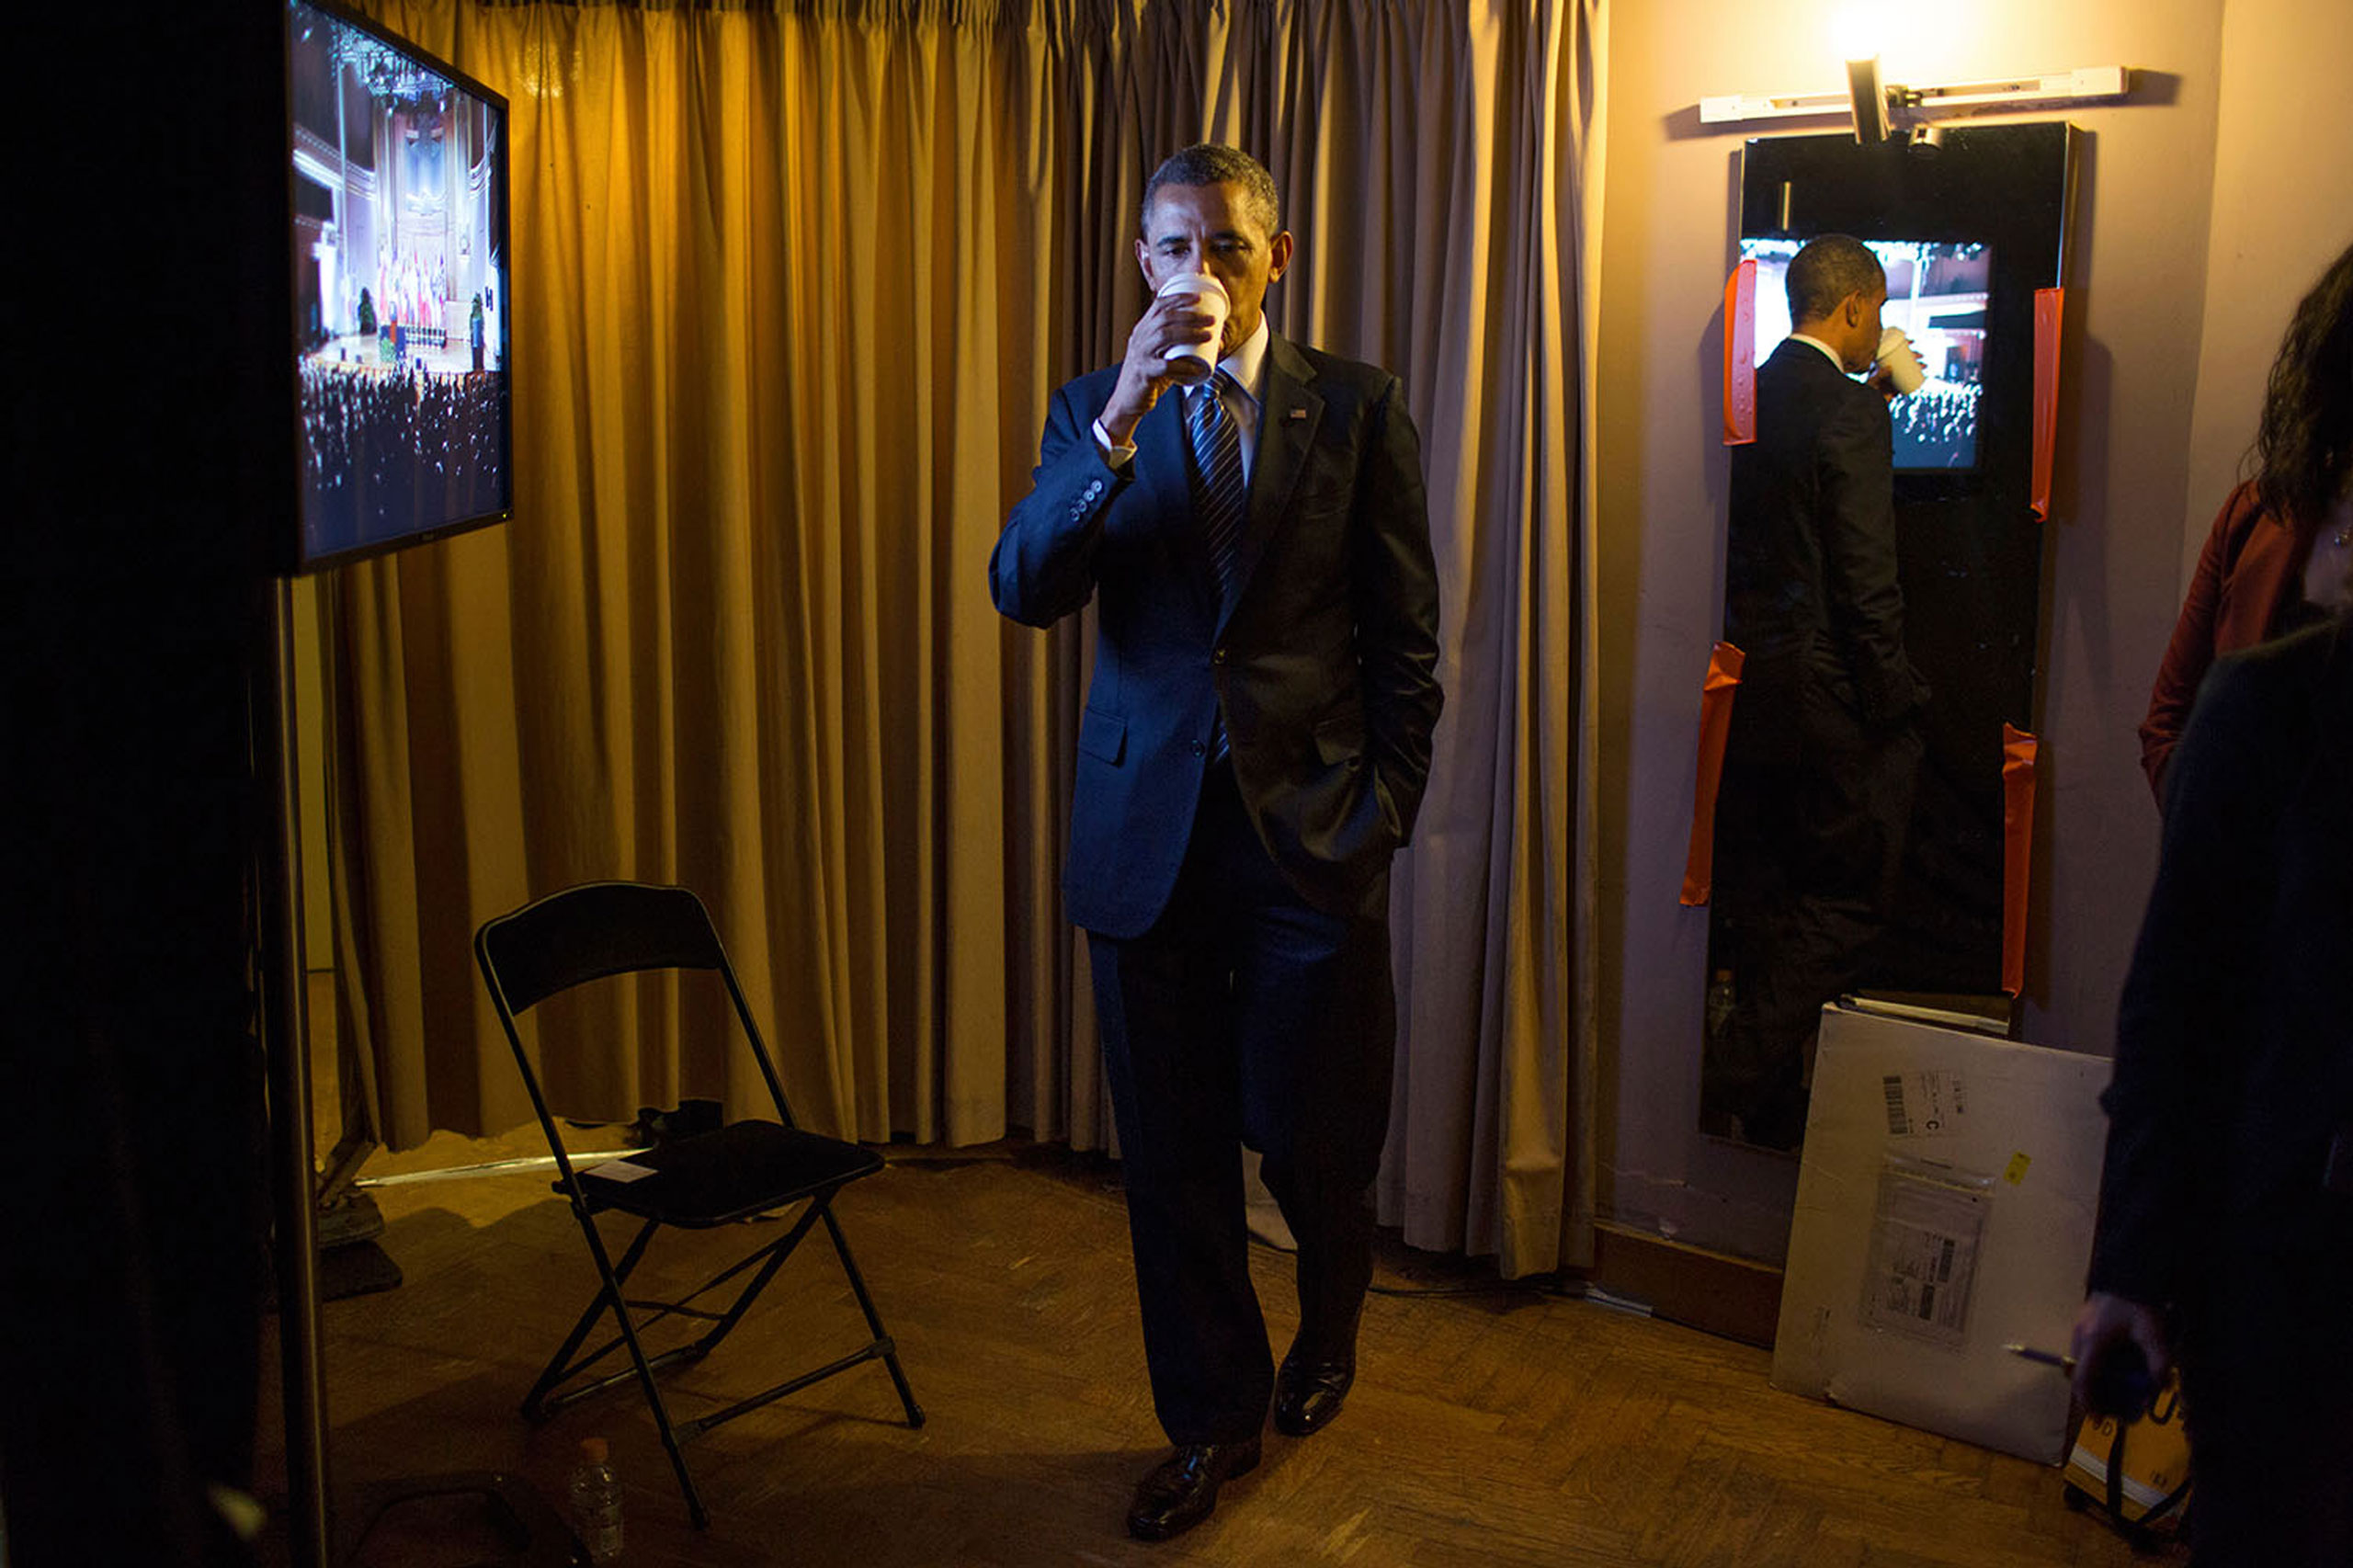 President Barack Obama sips hot tea backstage before he delivers remarks at the Palais Des Beaux Arts in Brussels, Belgium, March 26, 2014.